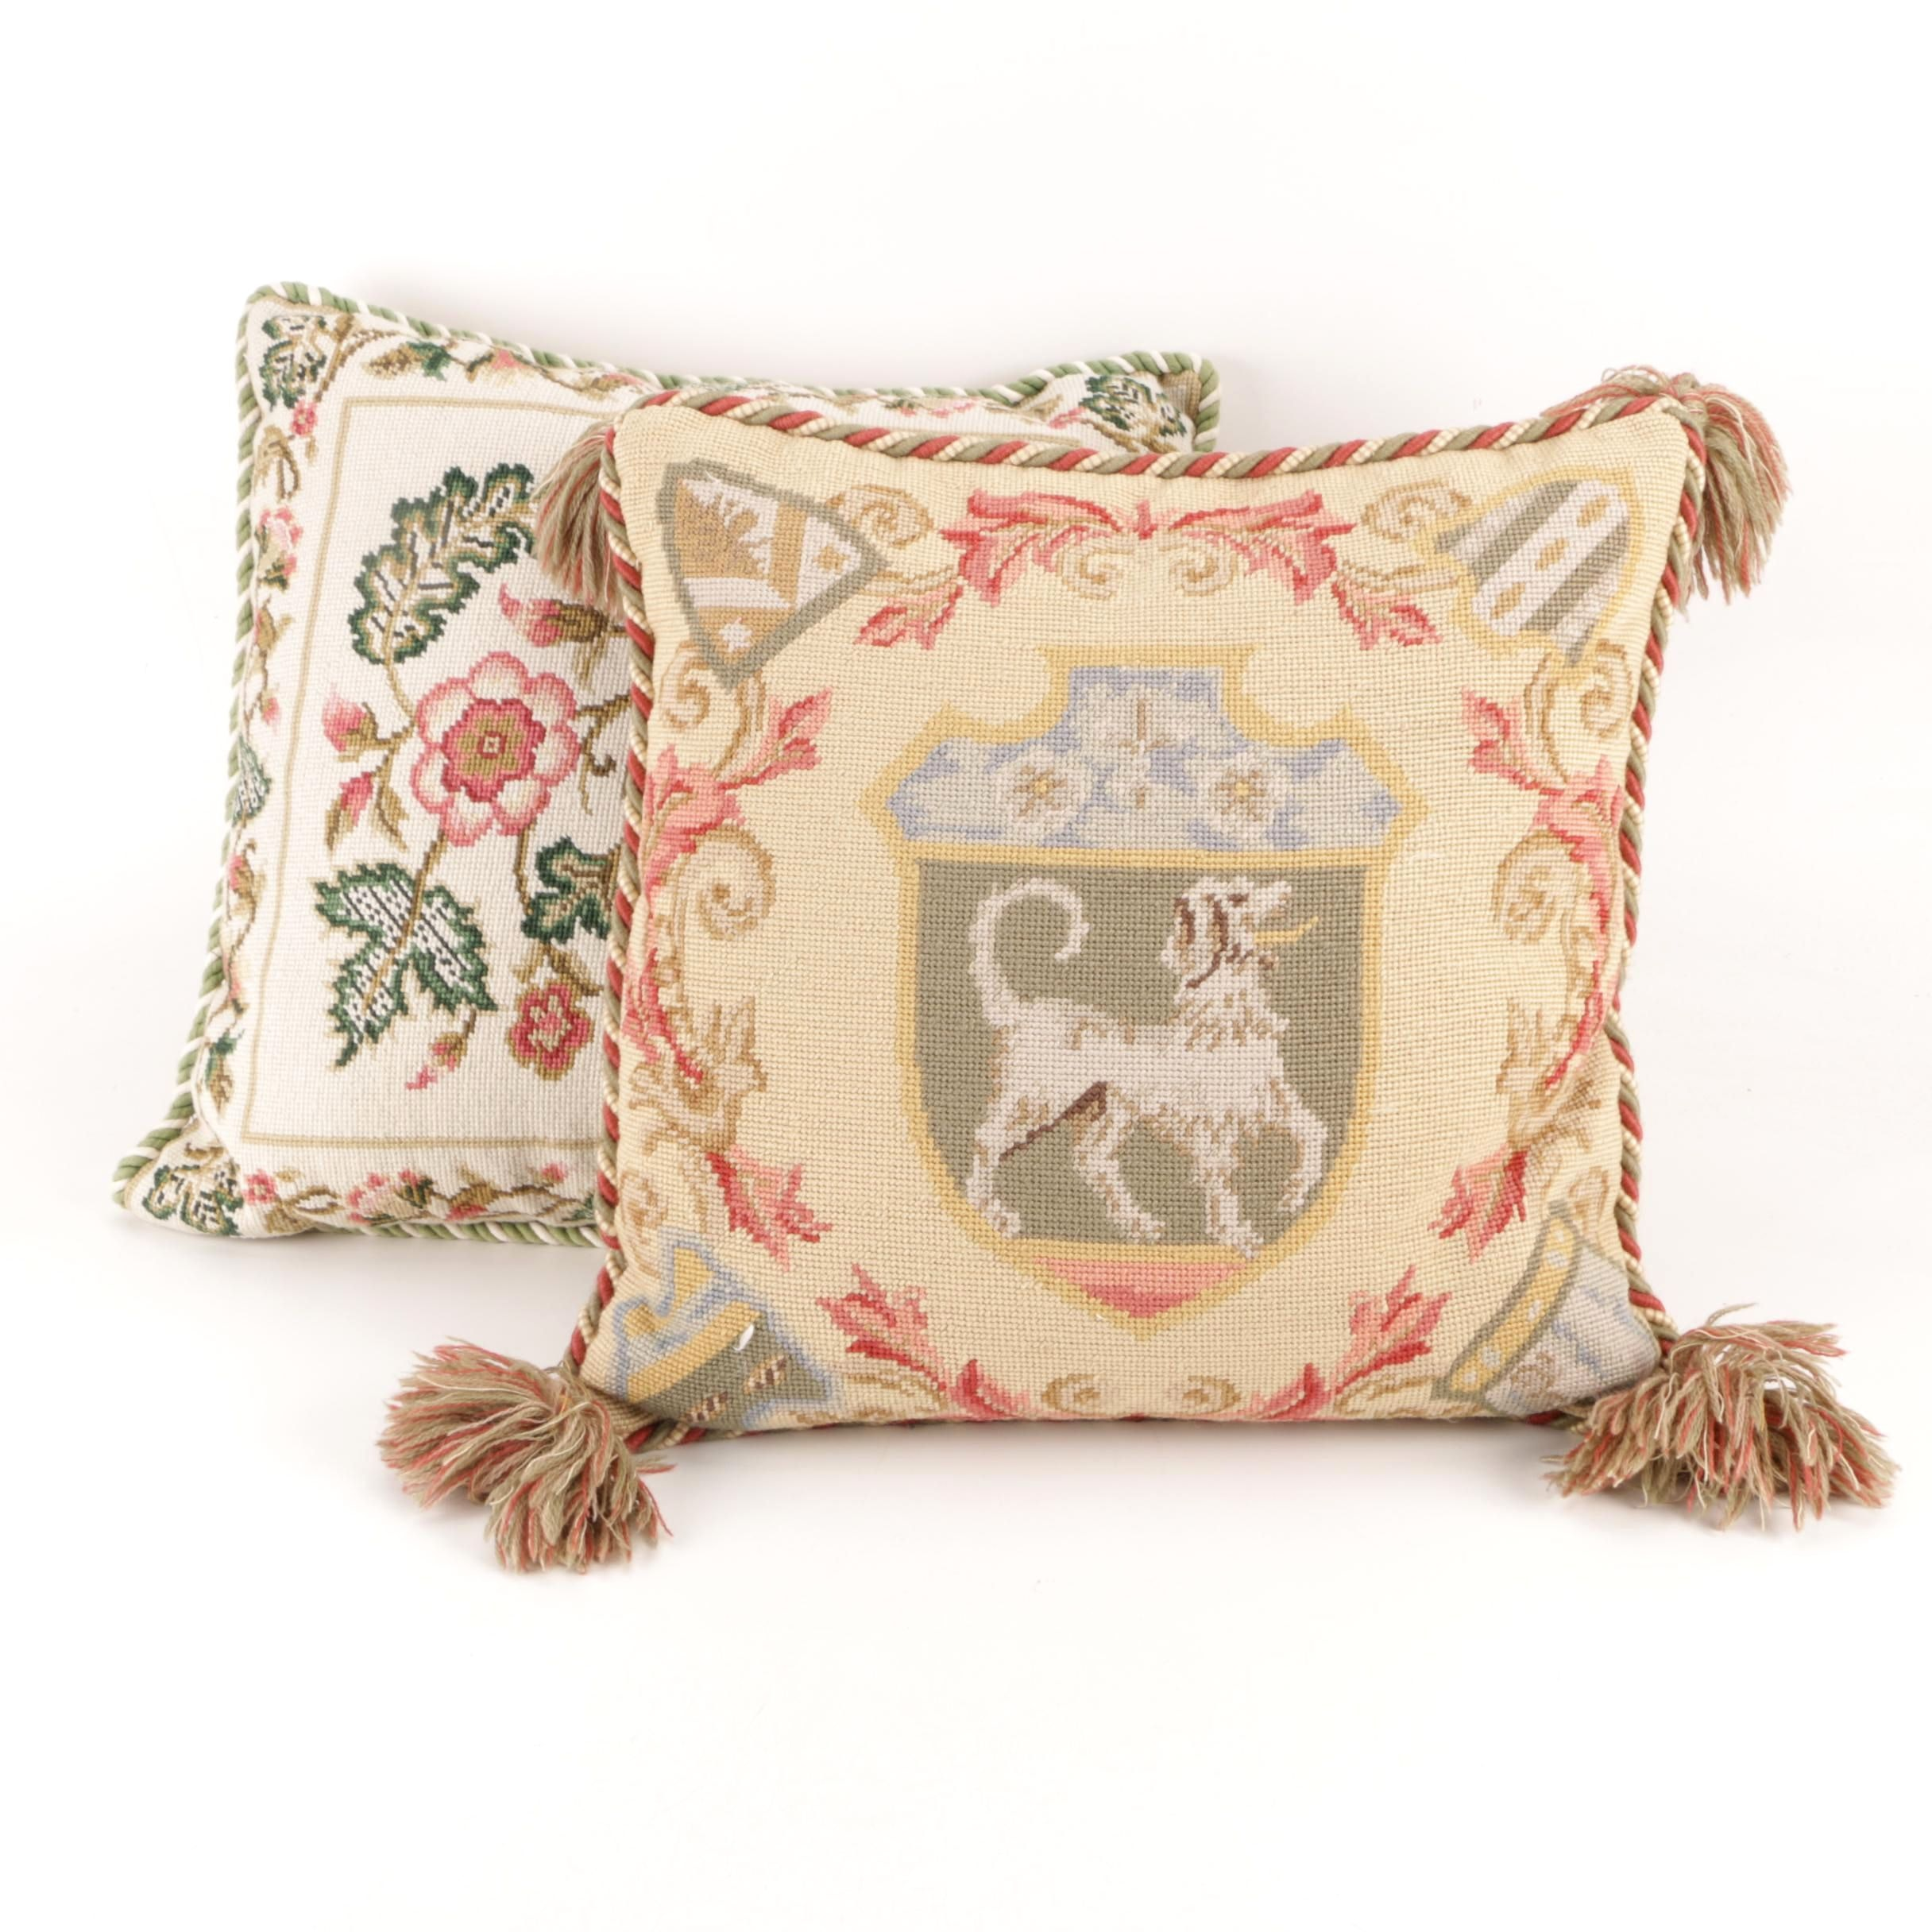 Katha Diddel Needlepoint Pillows